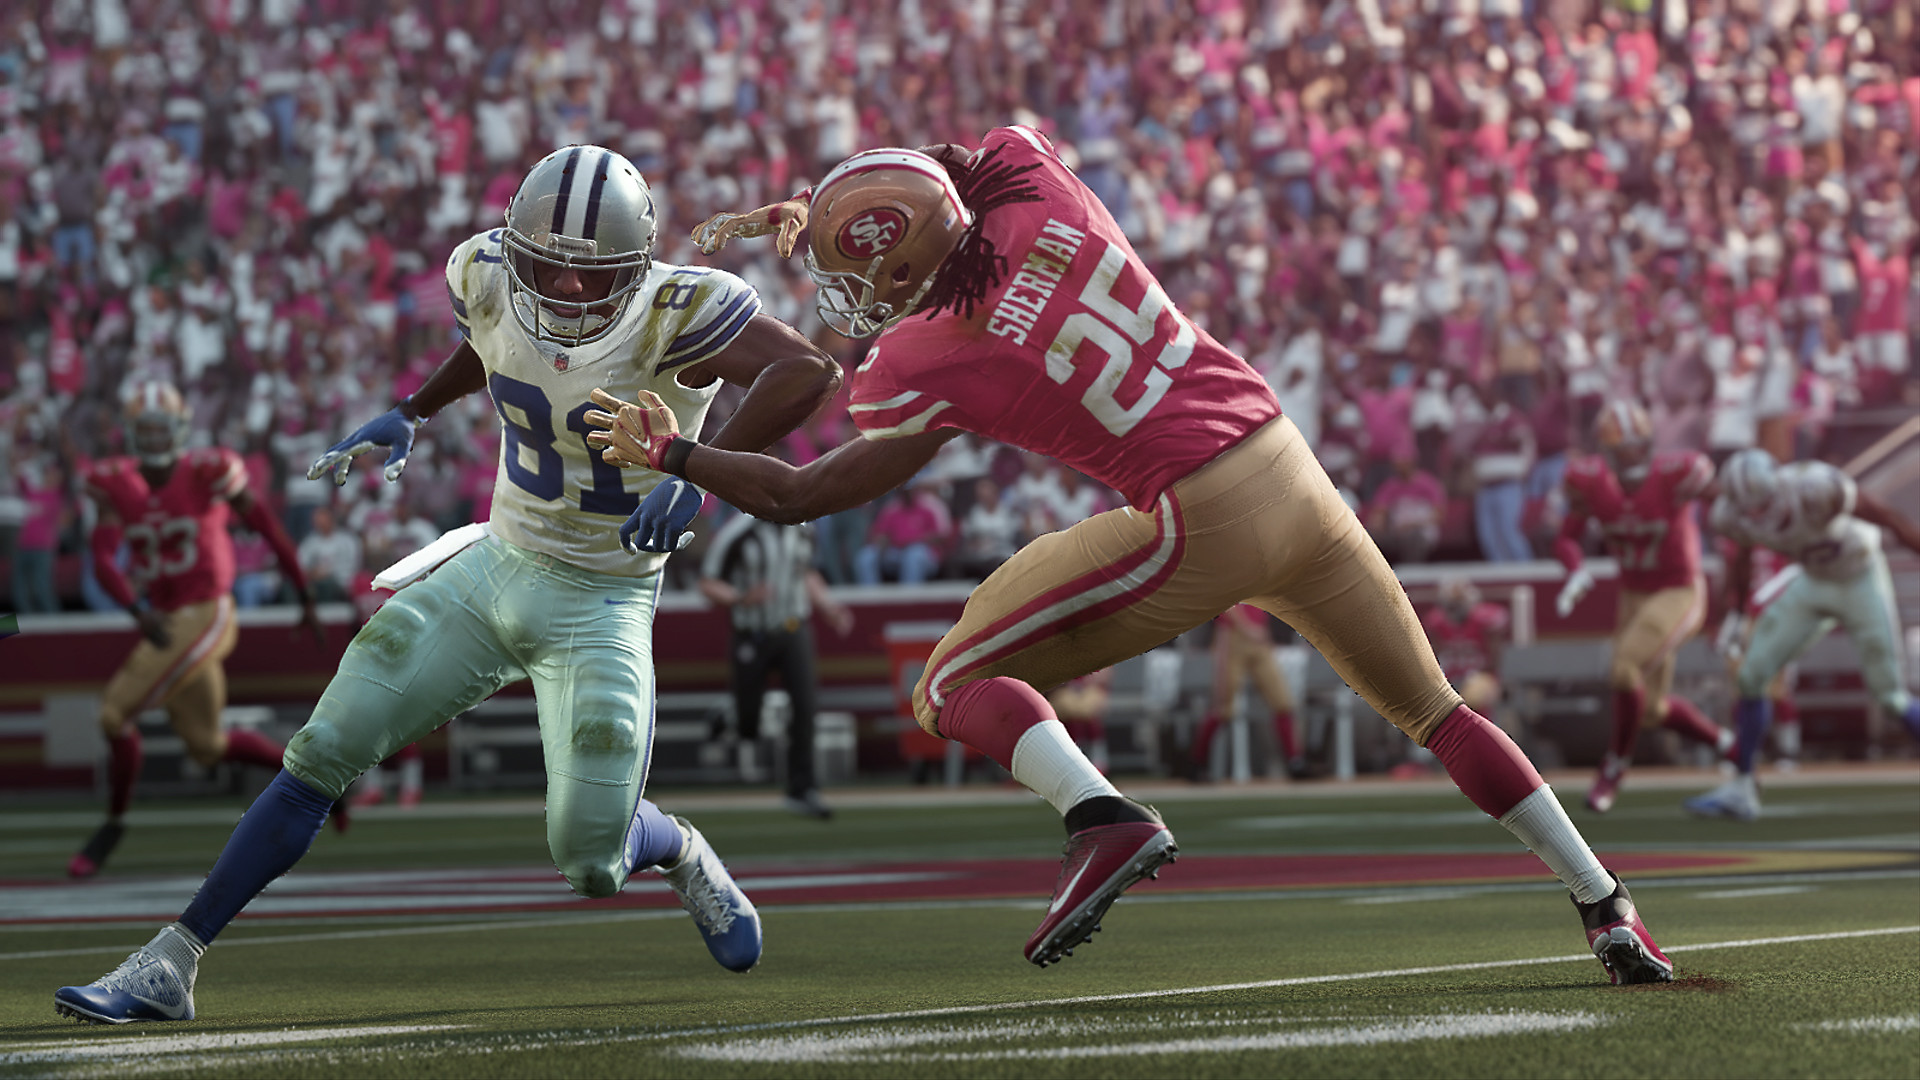 Madden NFL 19 Gameplay Screenshot - Preparing to tackle